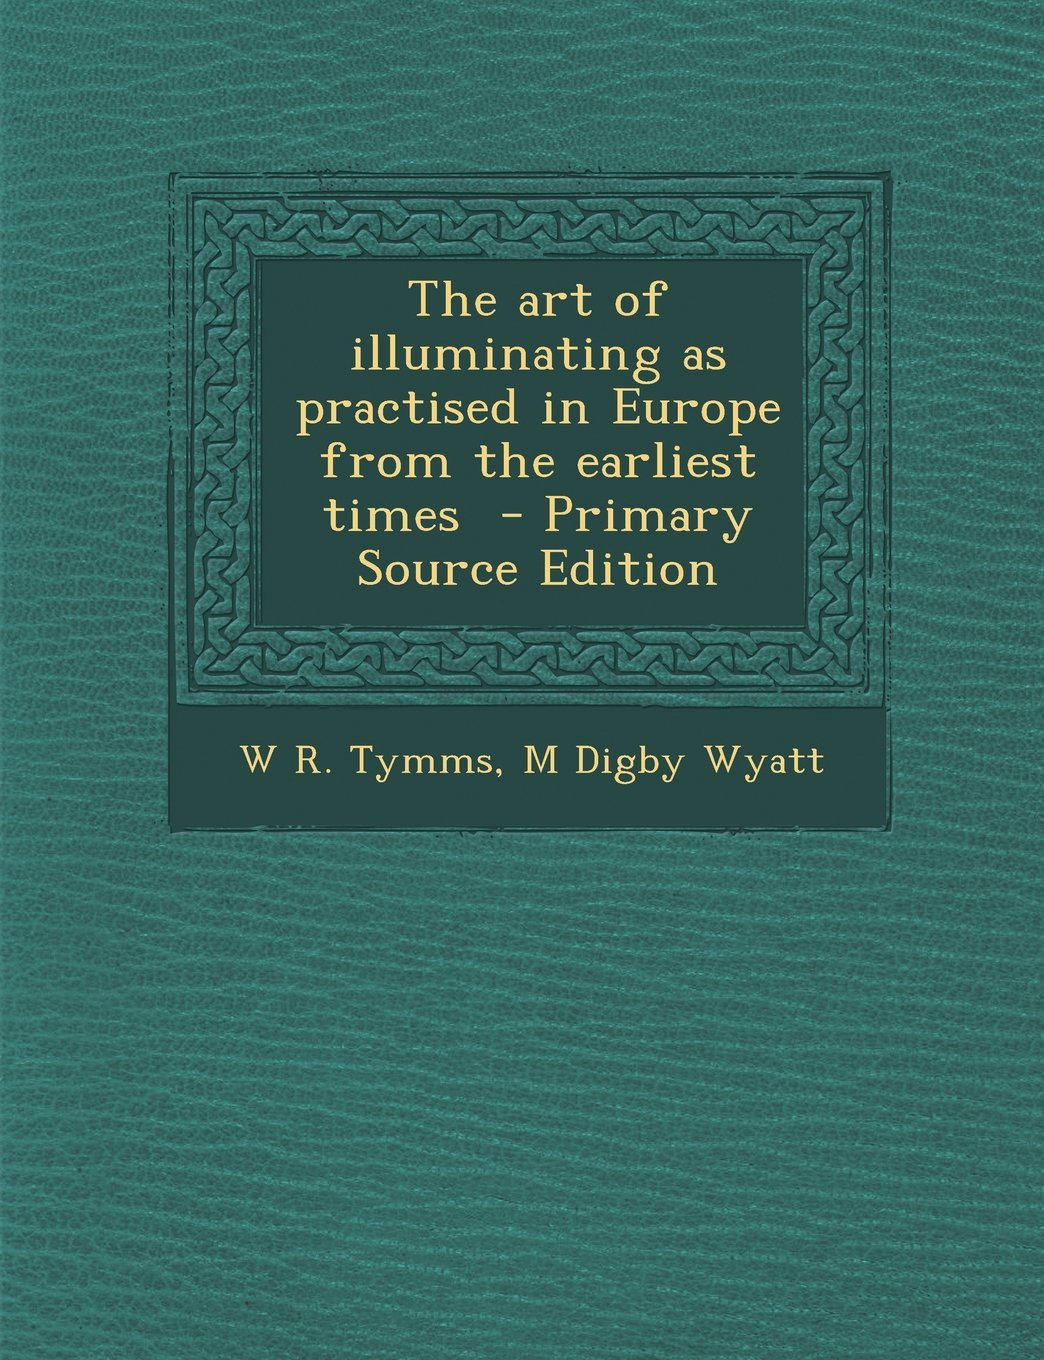 Download The art of illuminating as practised in Europe from the earliest times  - Primary Source Edition pdf